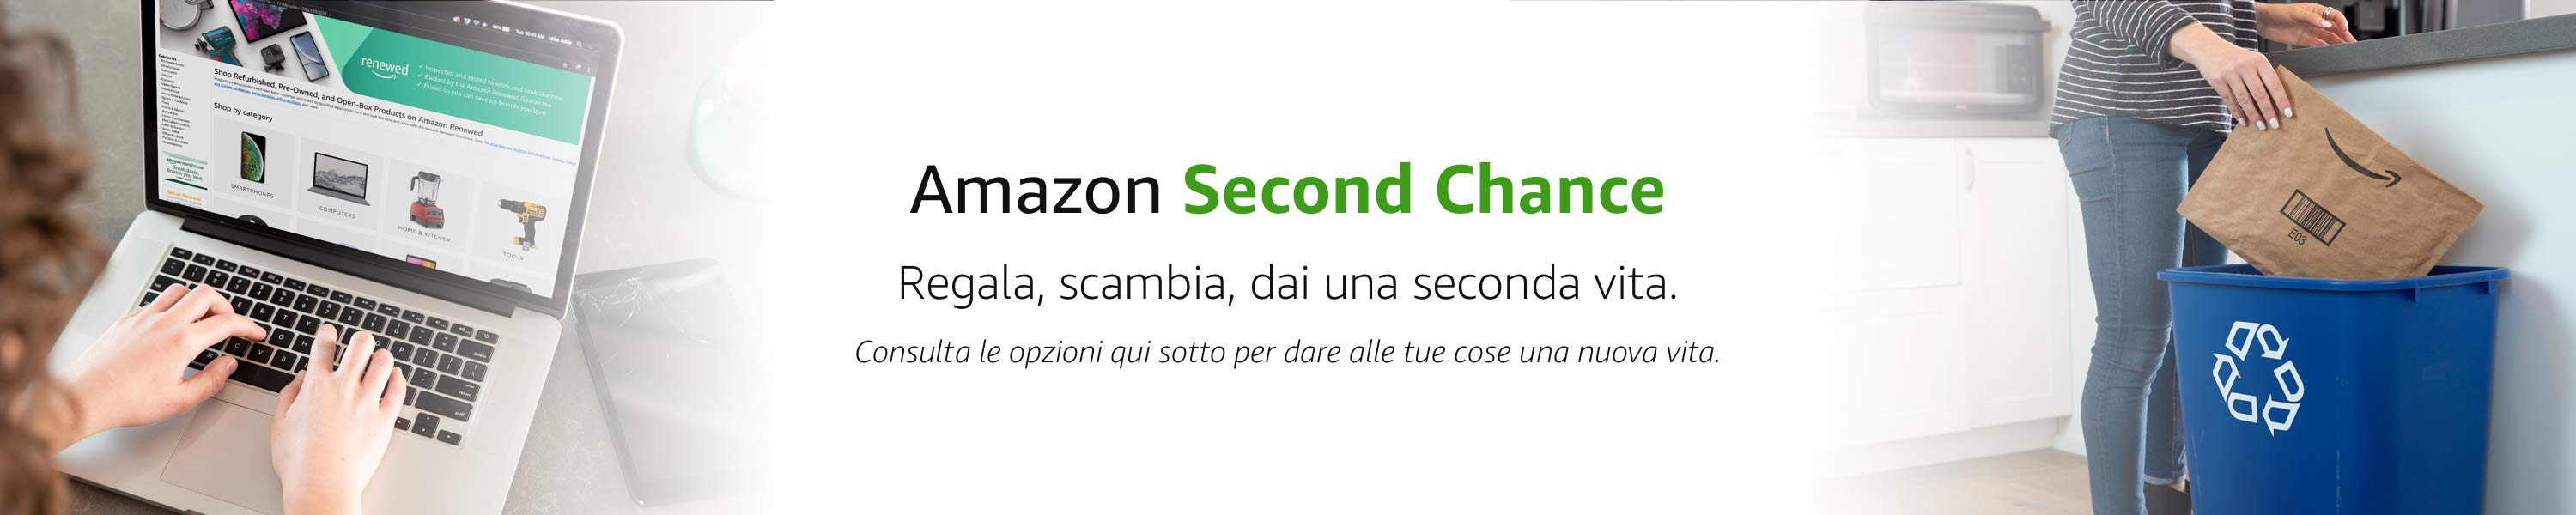 adtagcloud.com Second Chance